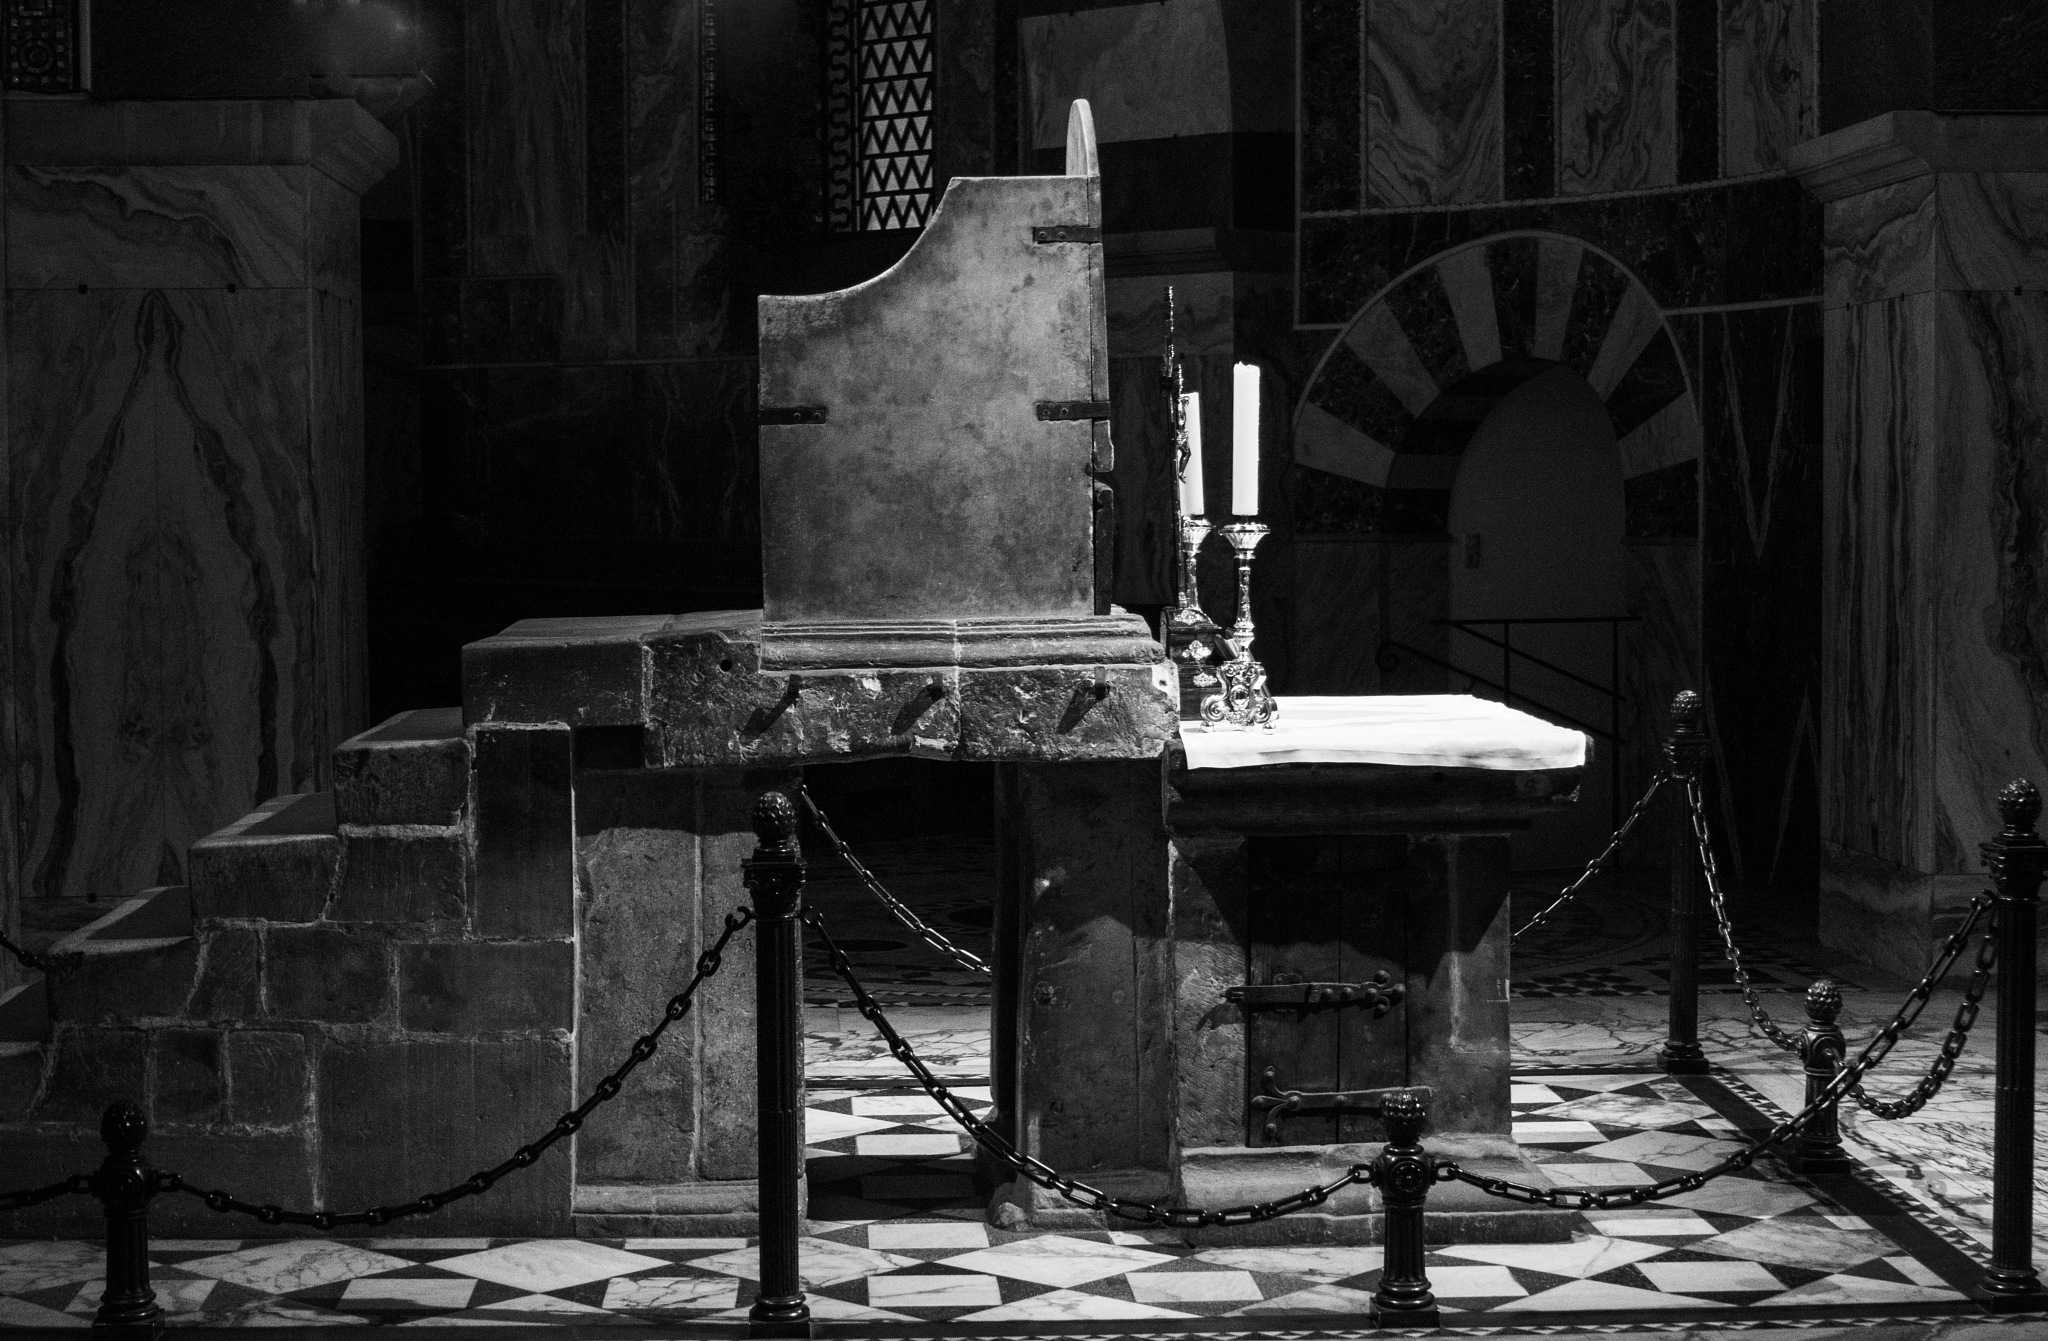 Throne of Charlemagne by ejk41